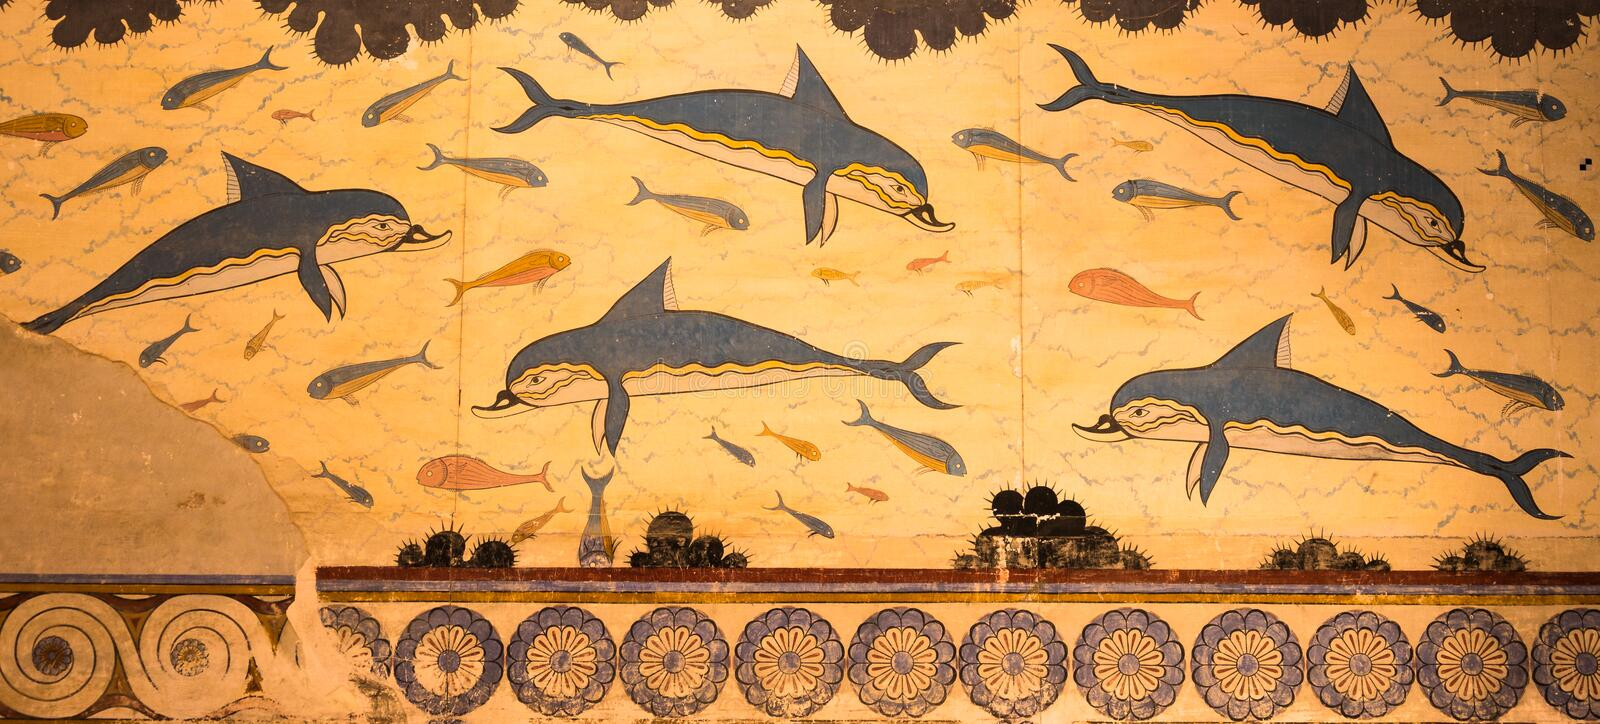 Knossos Palace Dolphins Fresco in Crete, Greece royalty free stock images